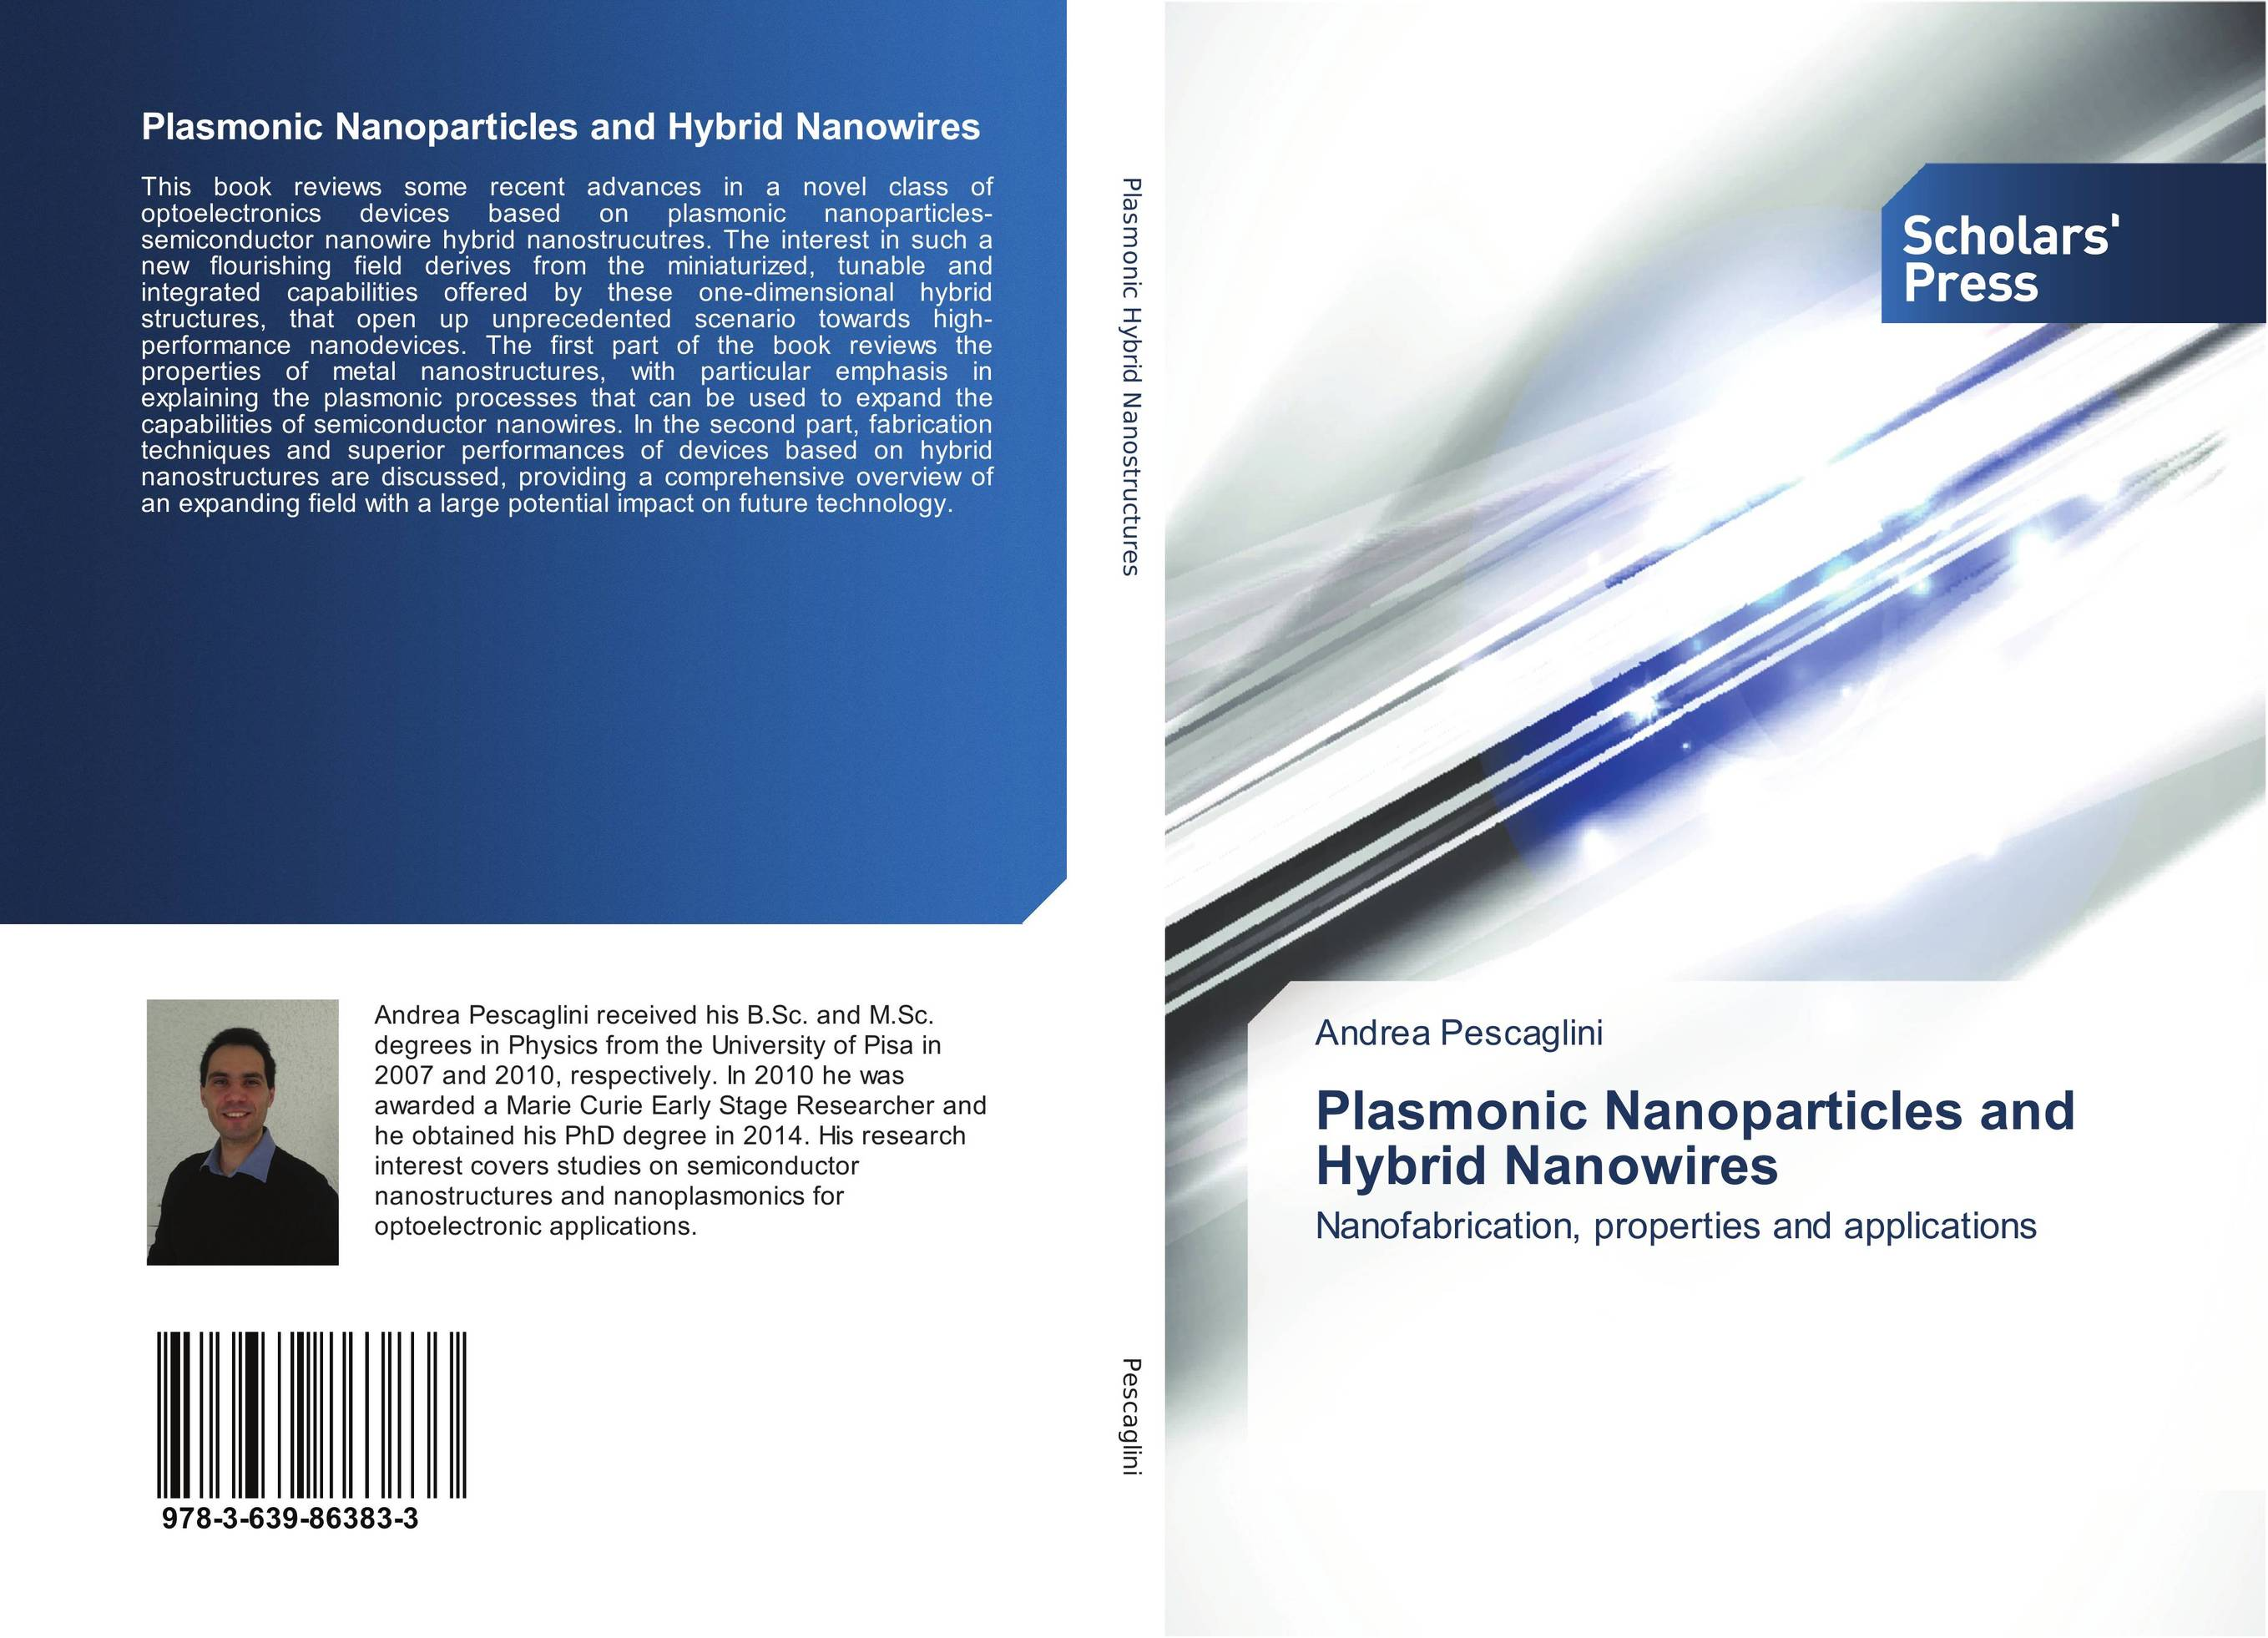 Plasmonic Nanoparticles and Hybrid Nanowires mohamed henini handbook of self assembled semiconductor nanostructures for novel devices in photonics and electronics